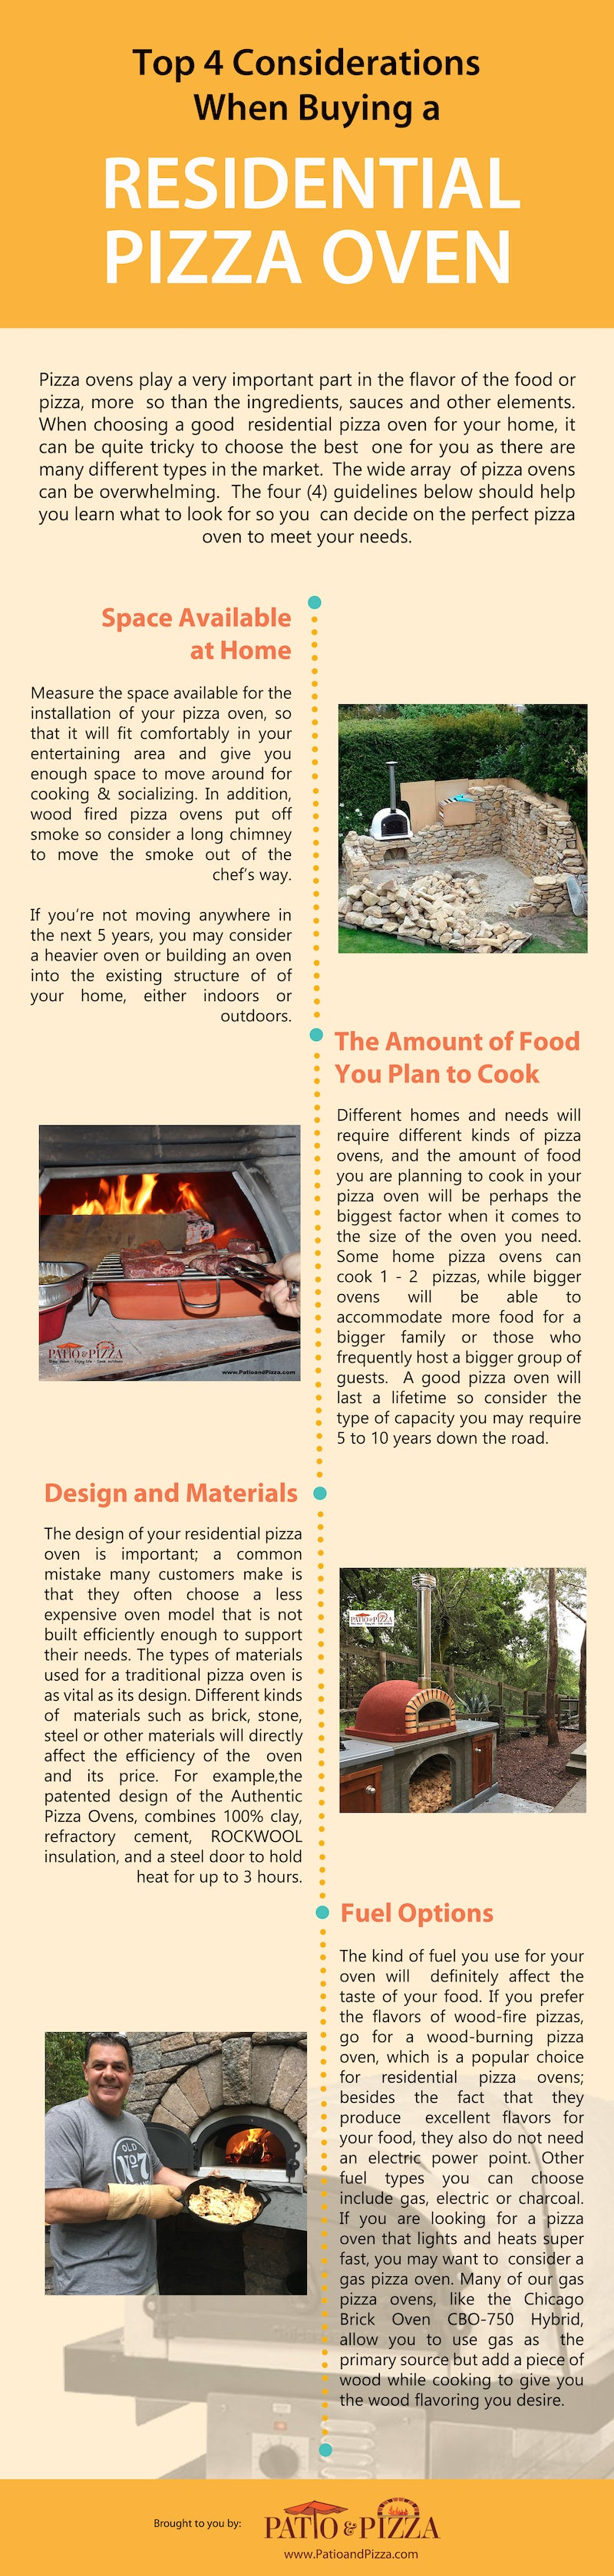 Infographic on buying a pizza oven